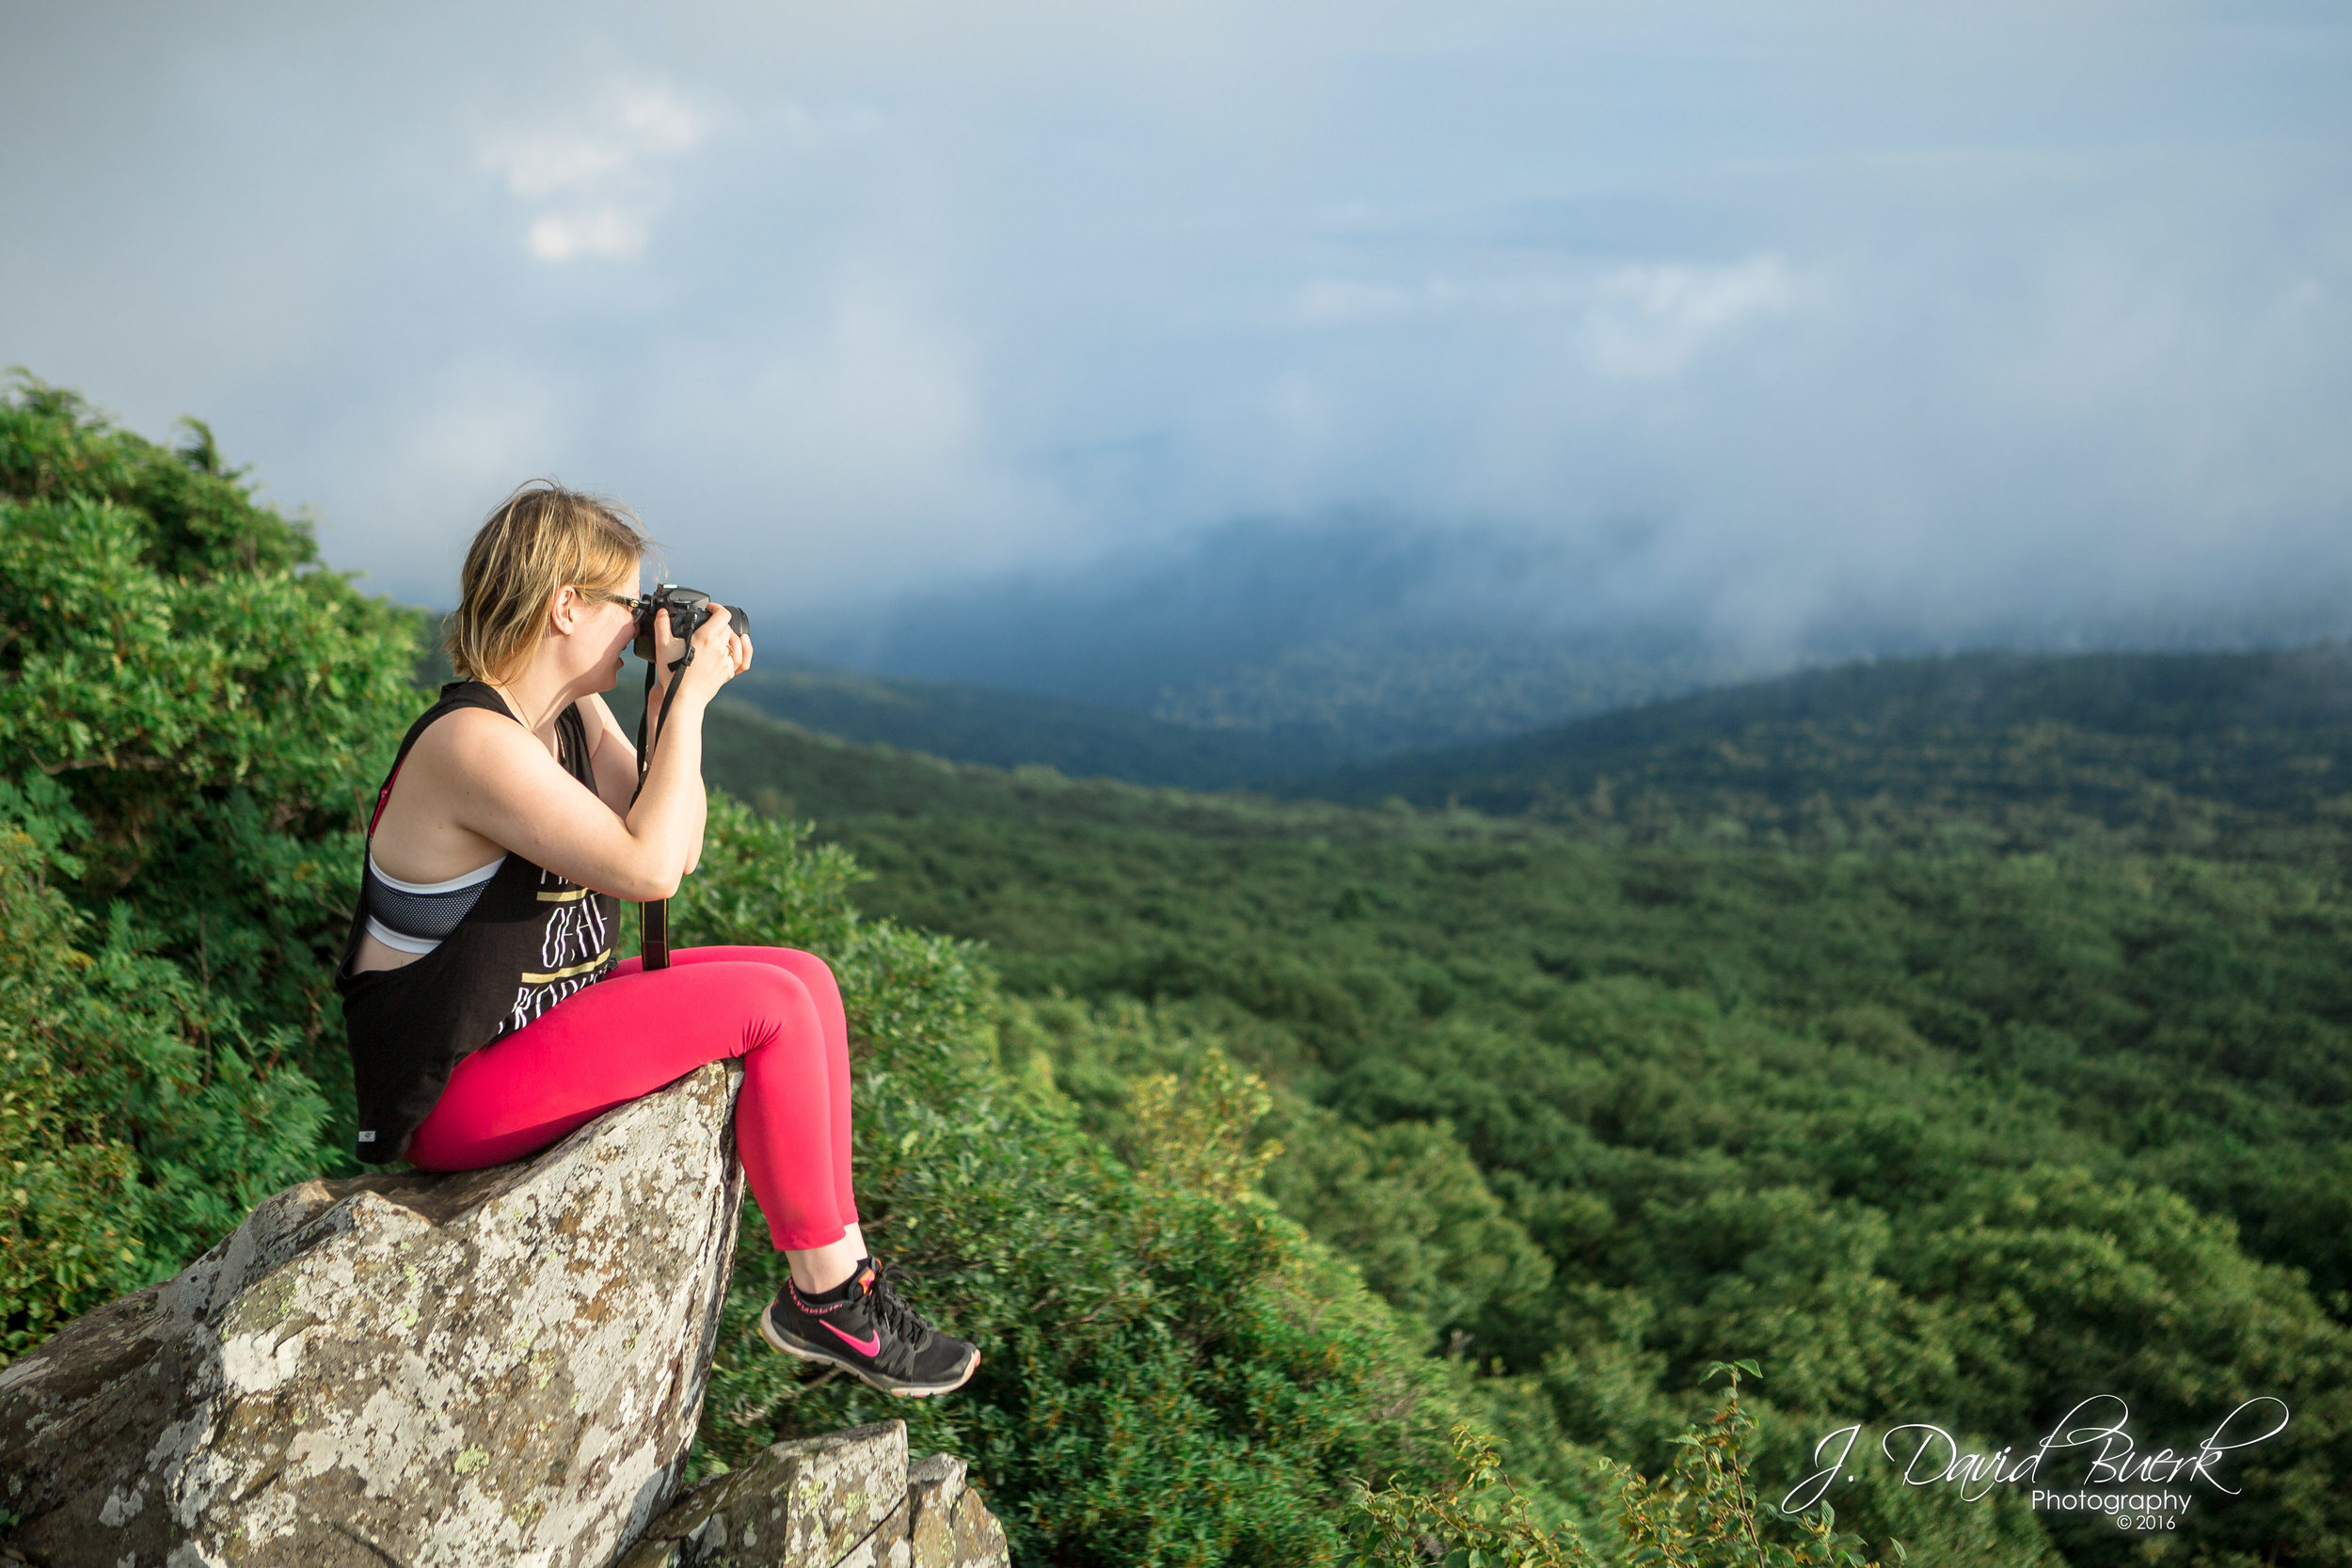 Portrait of Alyssa McGuire, fitness coach and newborn photographer, photographed atop Stony Man Mountain in Shenandoah, Virginia.